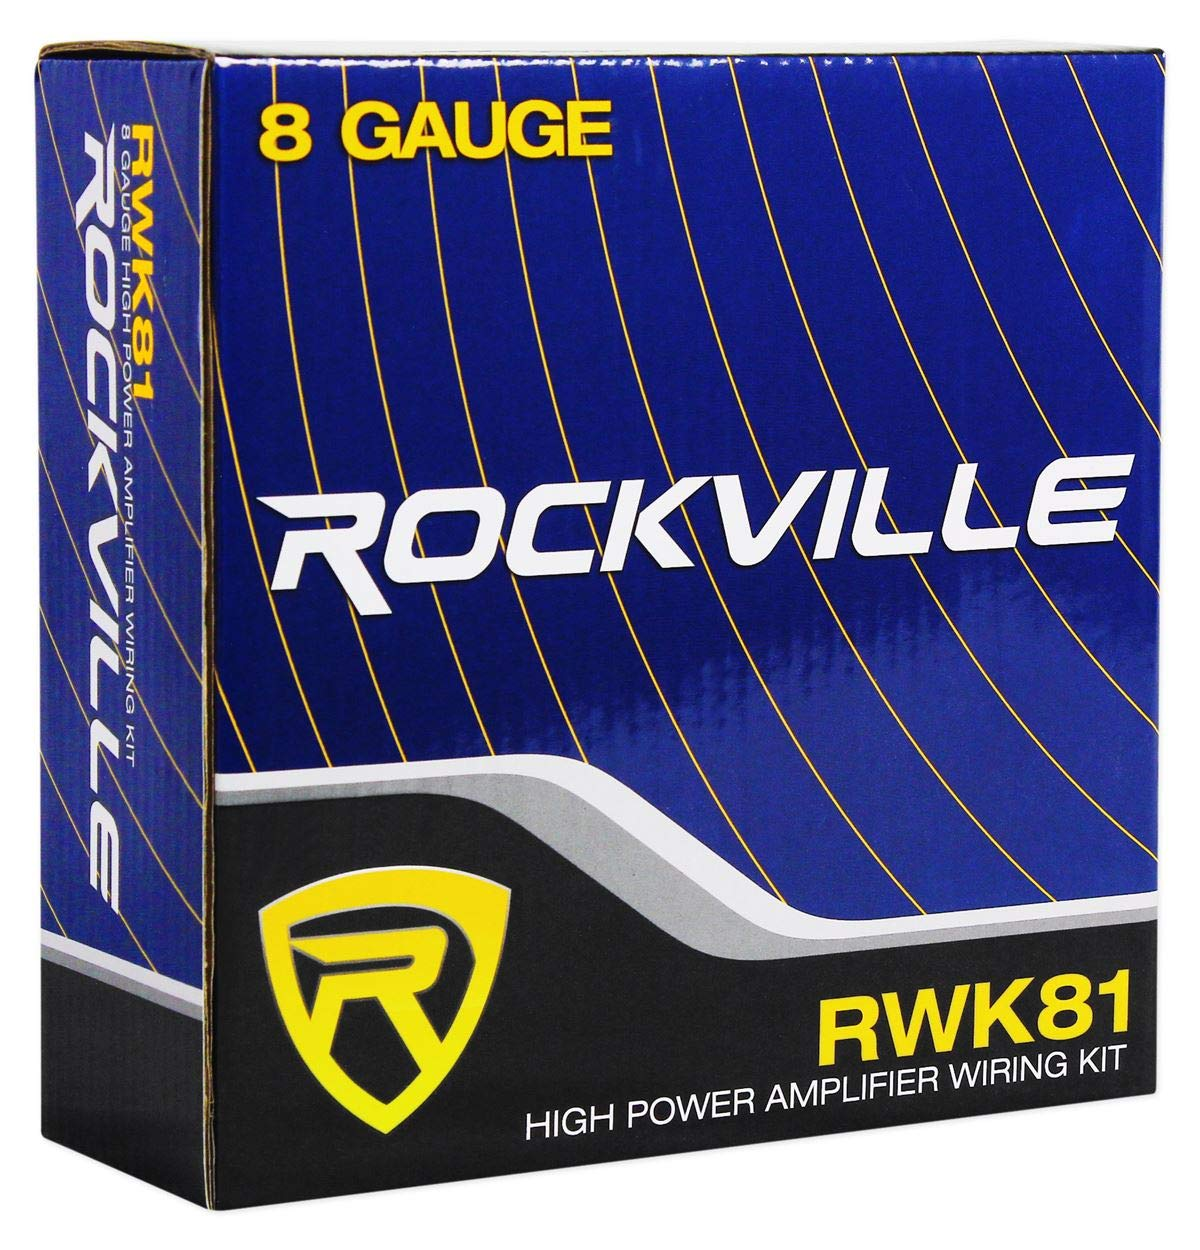 Rockville RWK81 8 Gauge Complete Amp Installation Wire Kit with 100/% Copper RCA